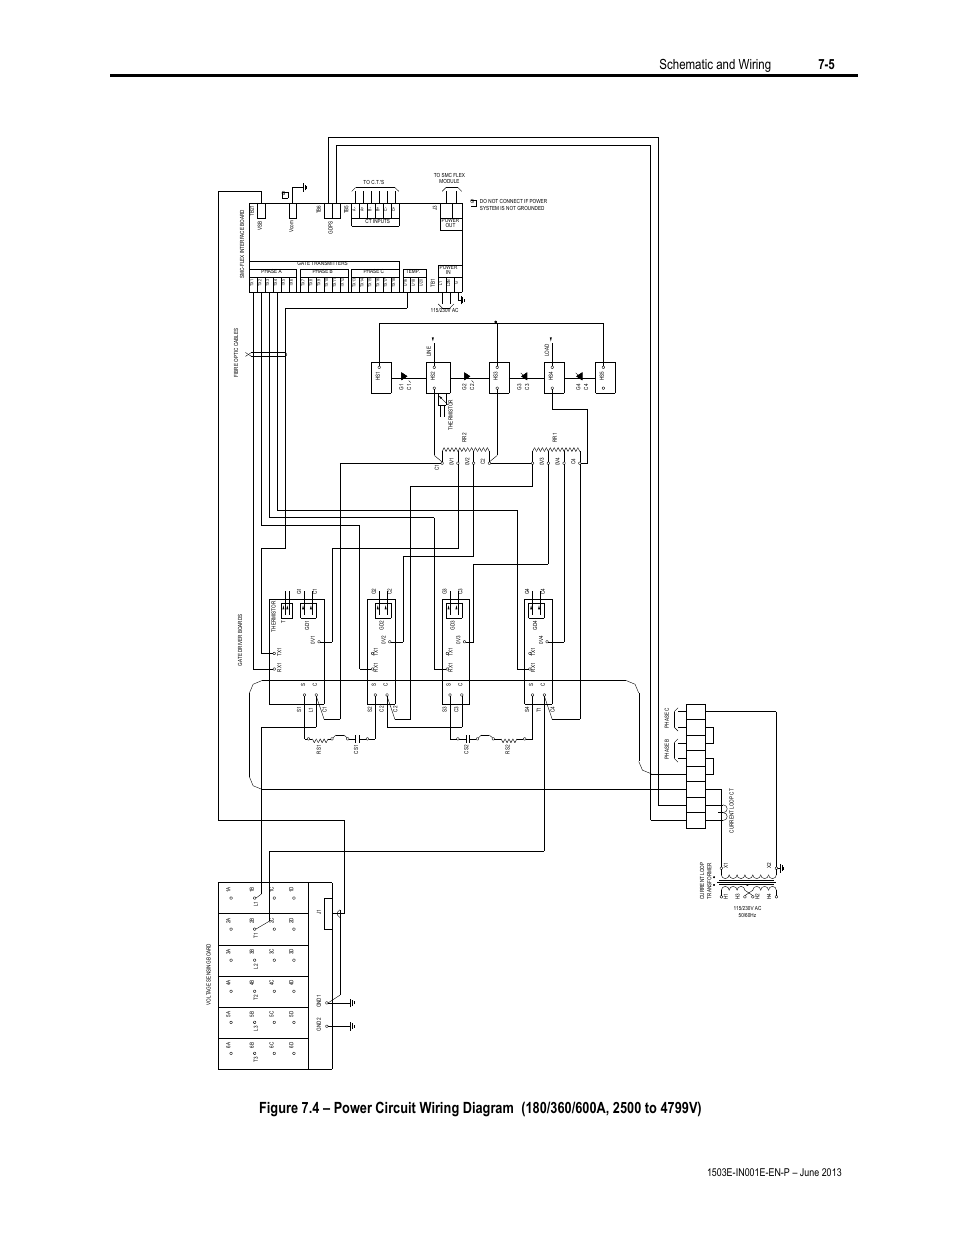 Smc Wiring Diagram Schematics Hisun Schemes Apc Schematic And 7 5 Rockwell Automation